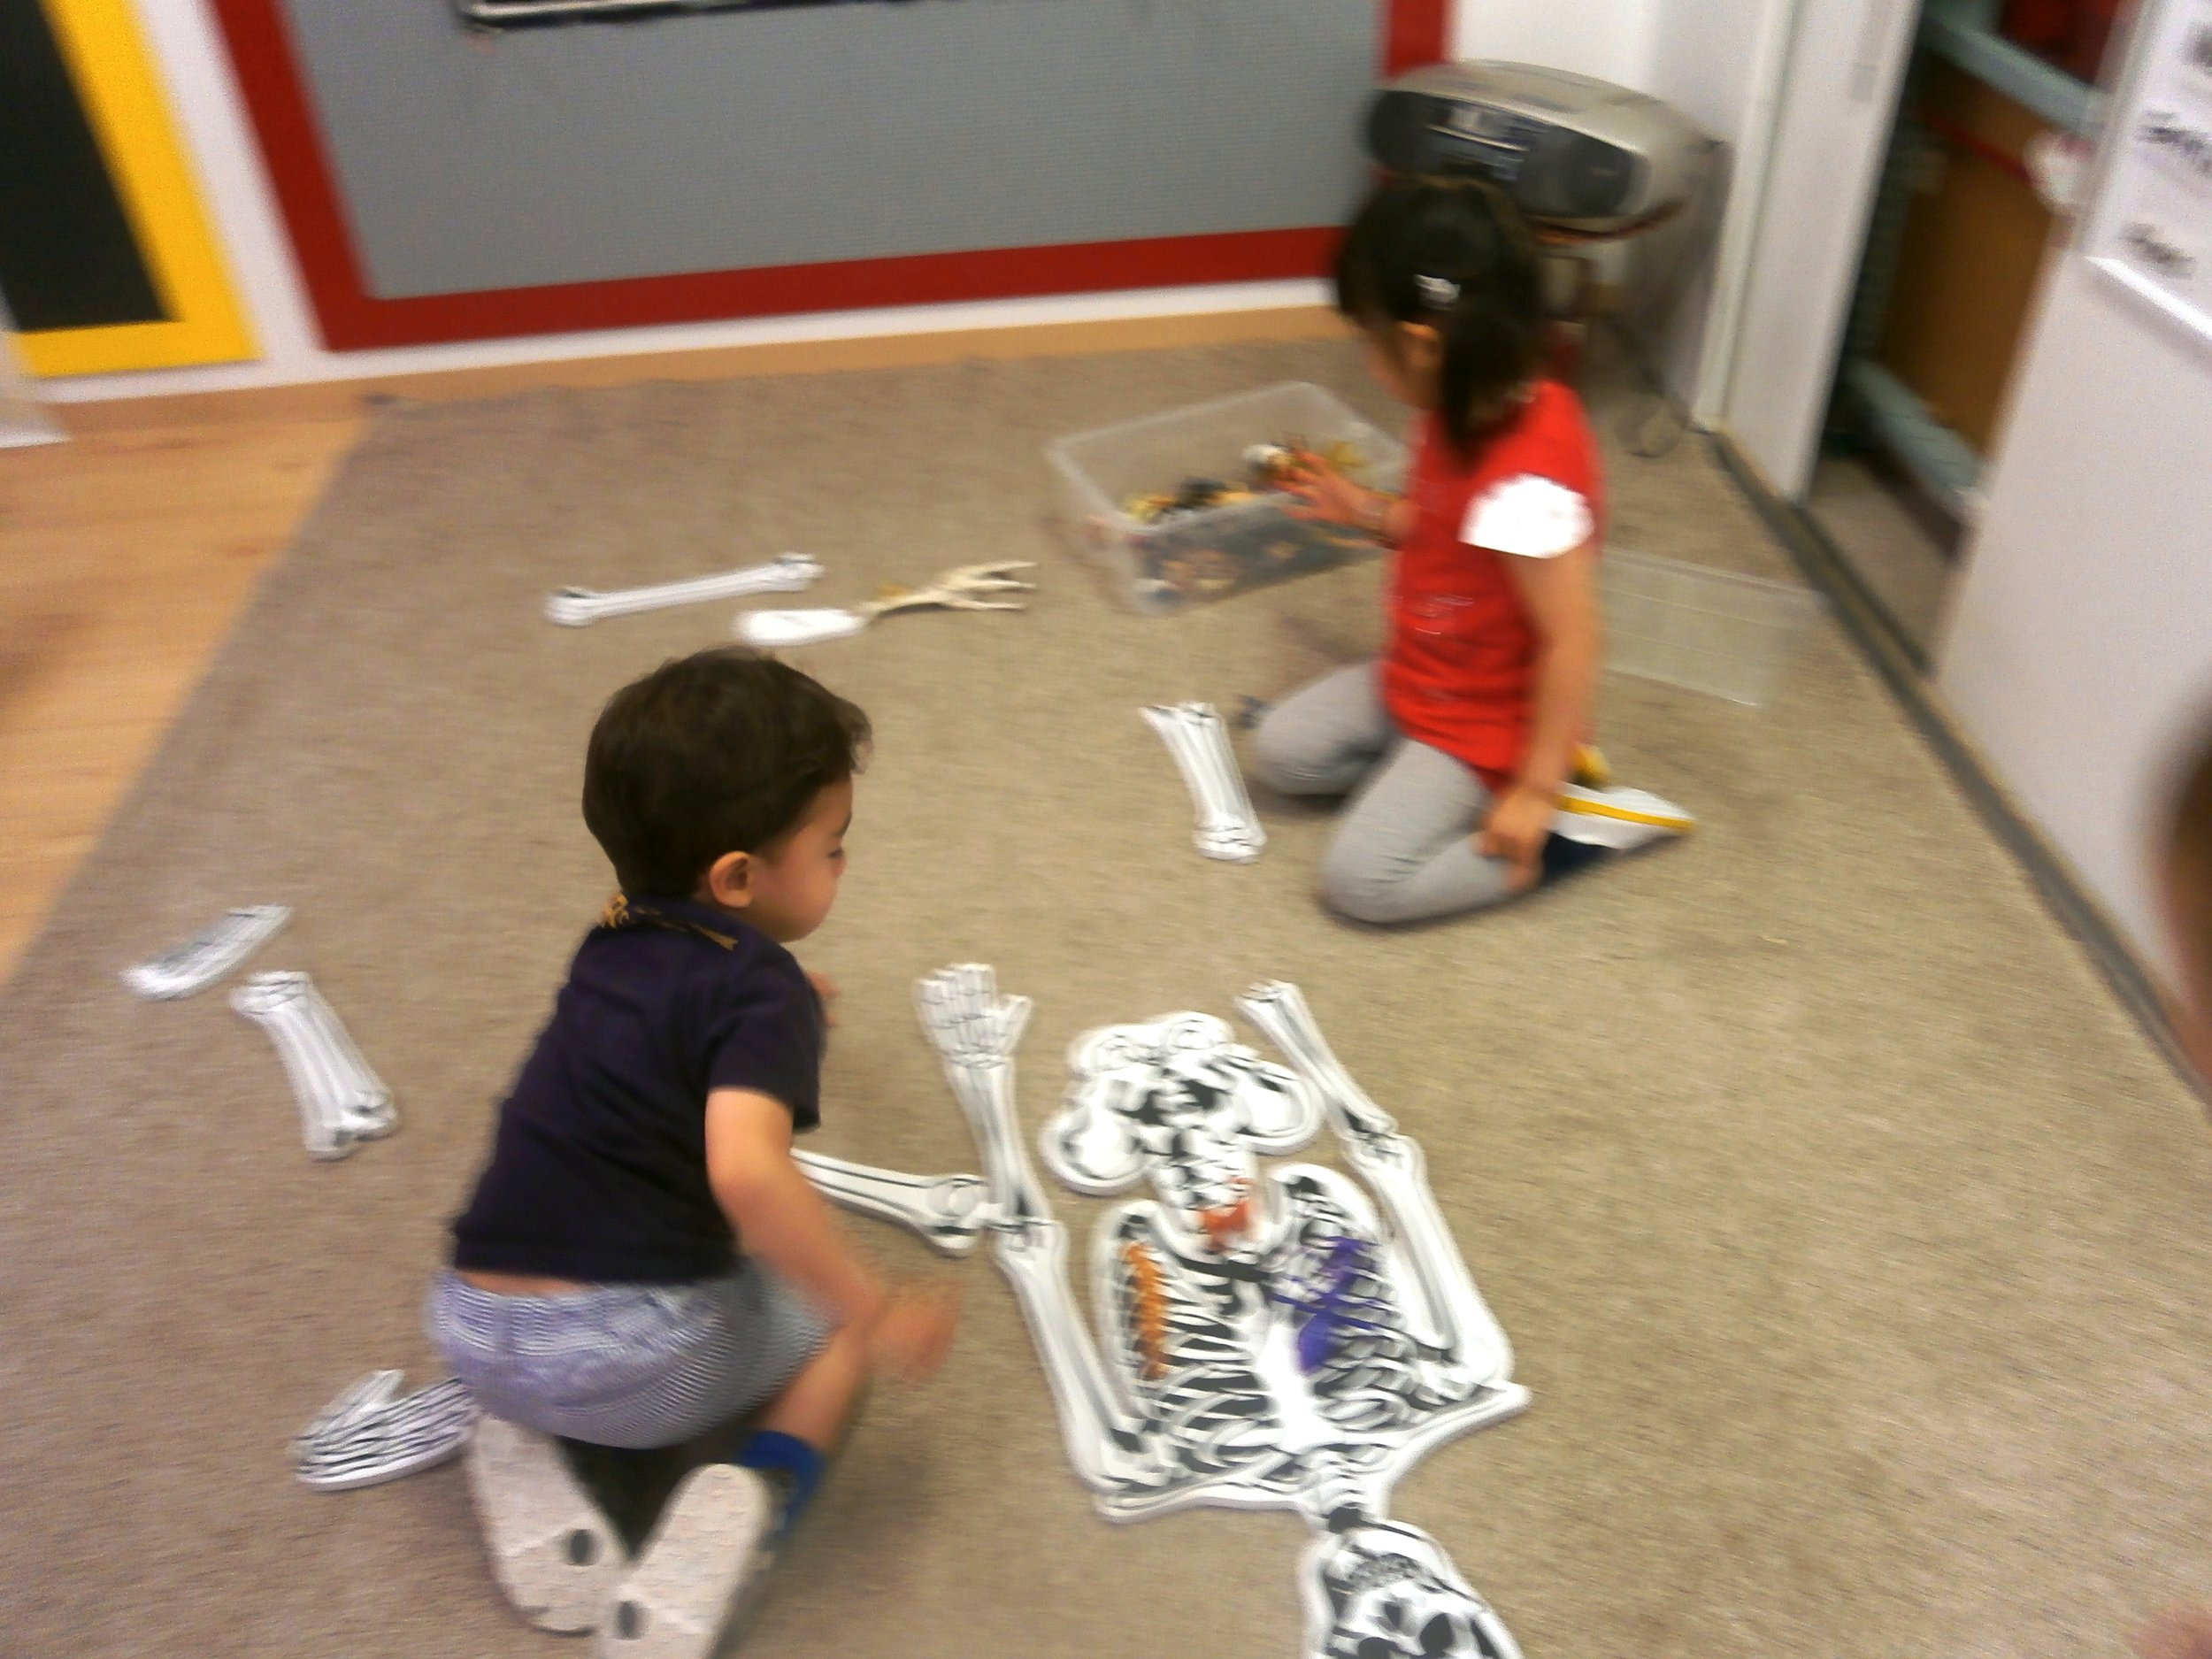 Here are some of our friends trying to finish our big skeleton puzzle.